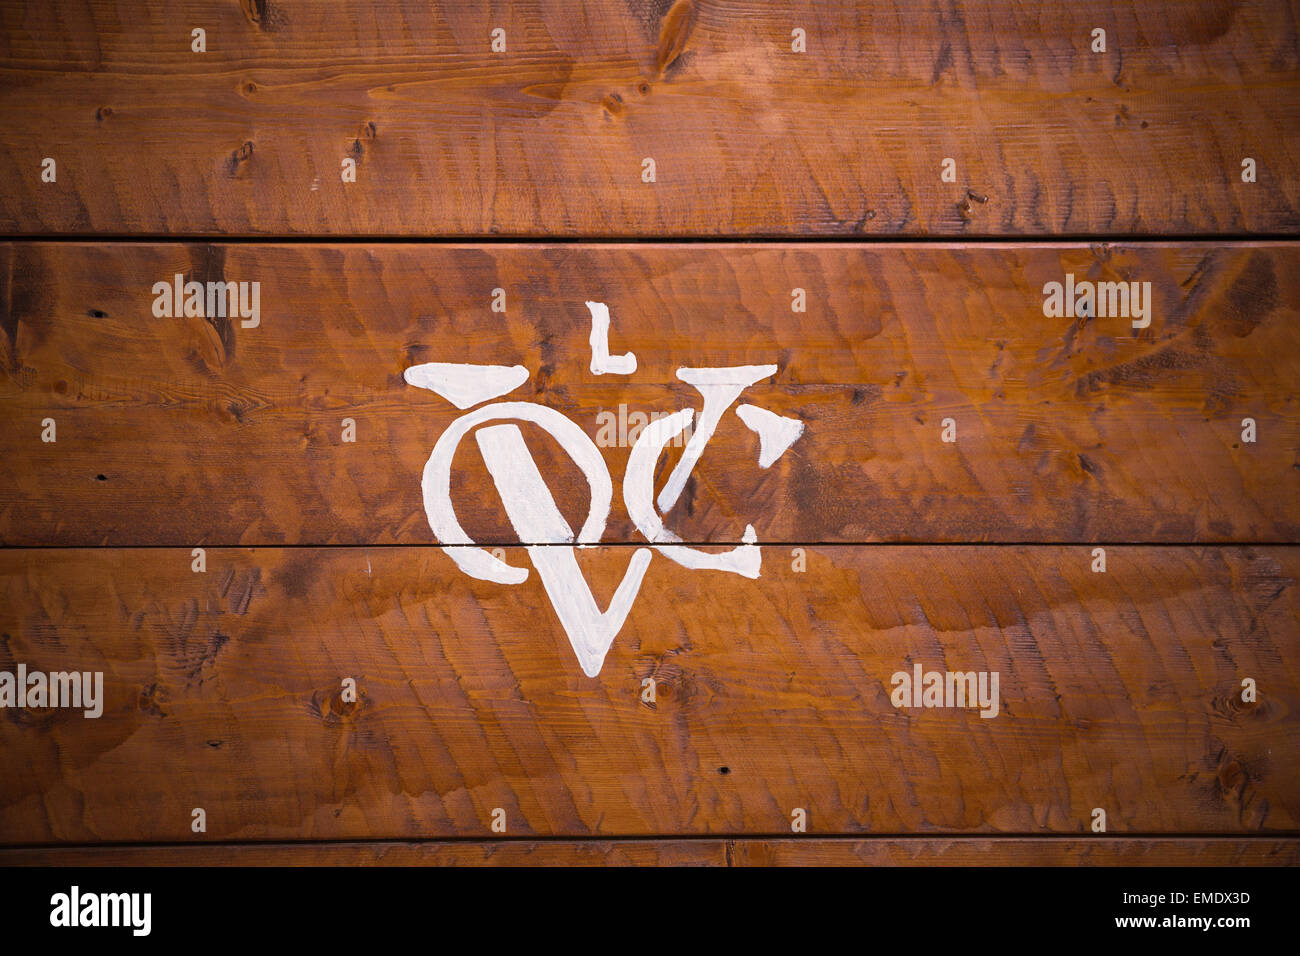 Logo of the Dutch United East India Company (Vereenigde Oostindische Compagnie) on background of wooden planks. - Stock Image